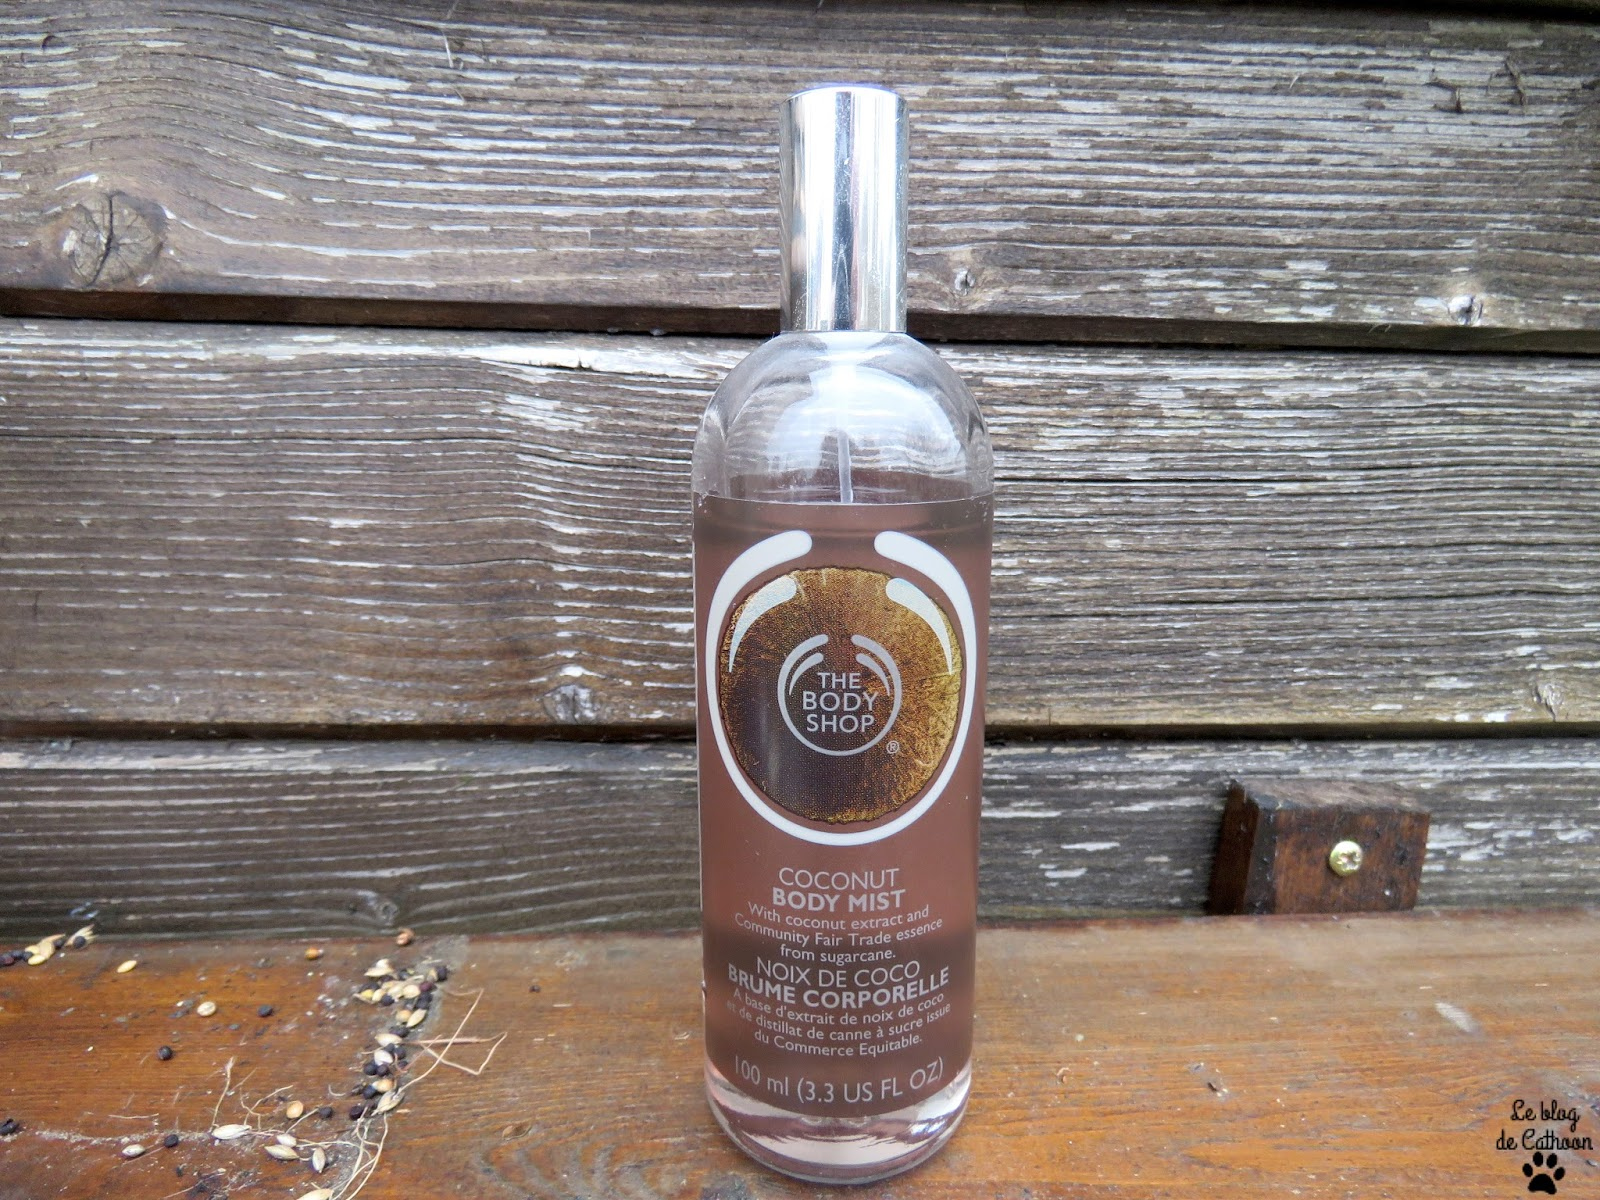 Brume corporelle noix de coco  The Body Shop